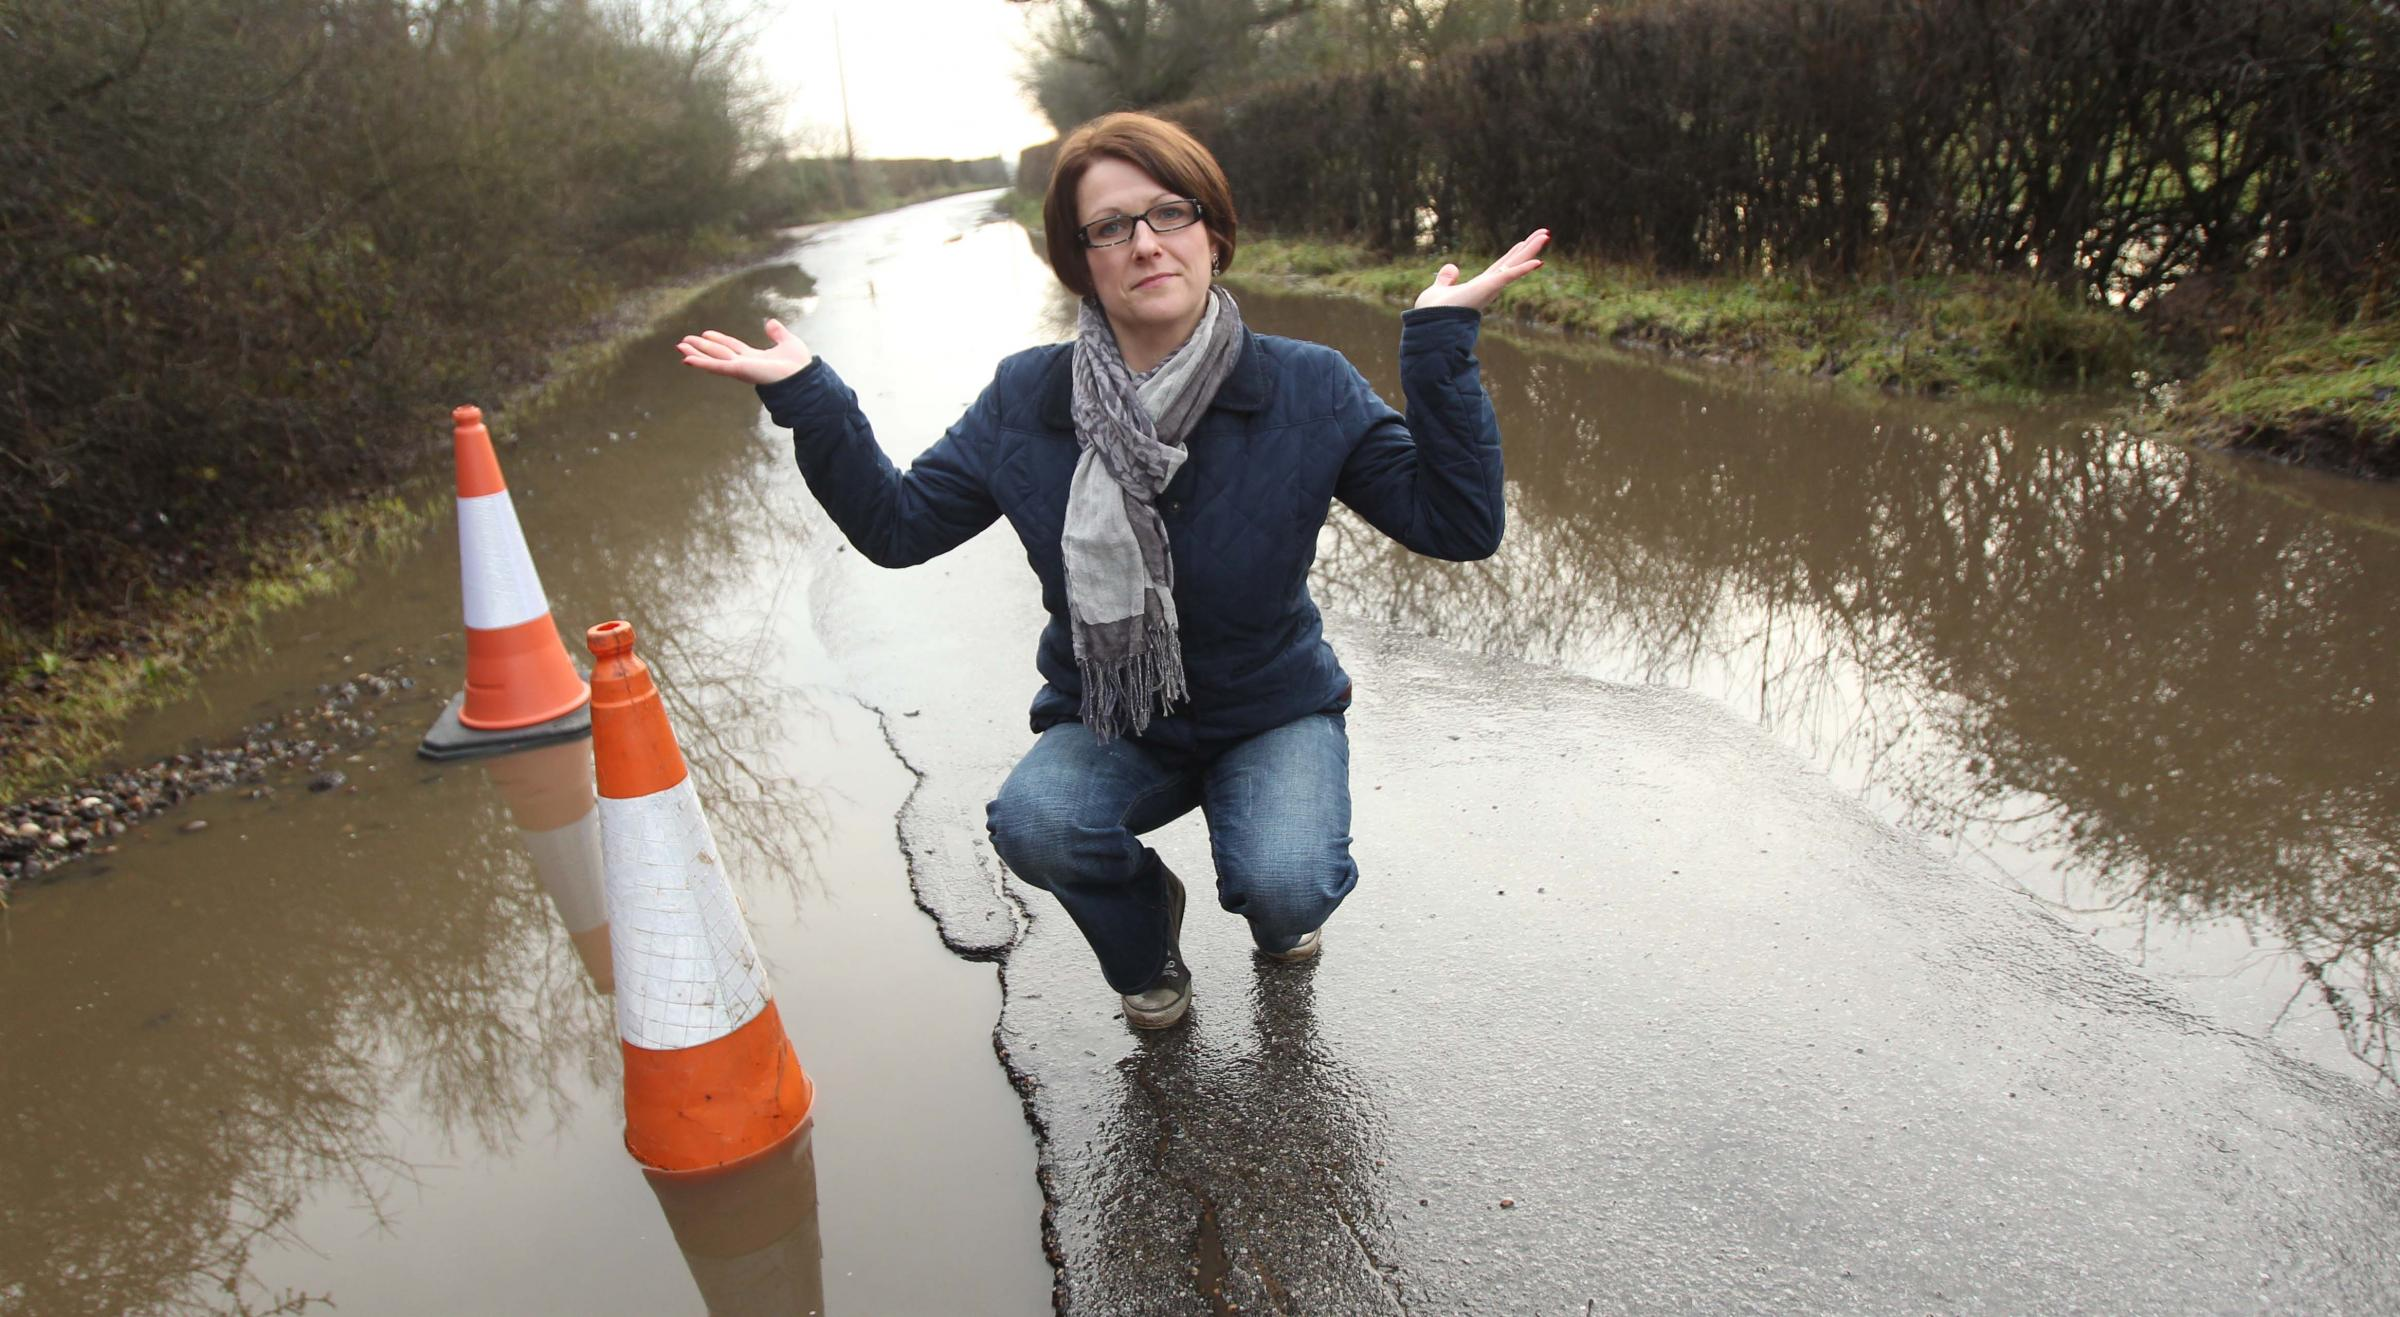 Corinne Jacques at the site of the large pothole